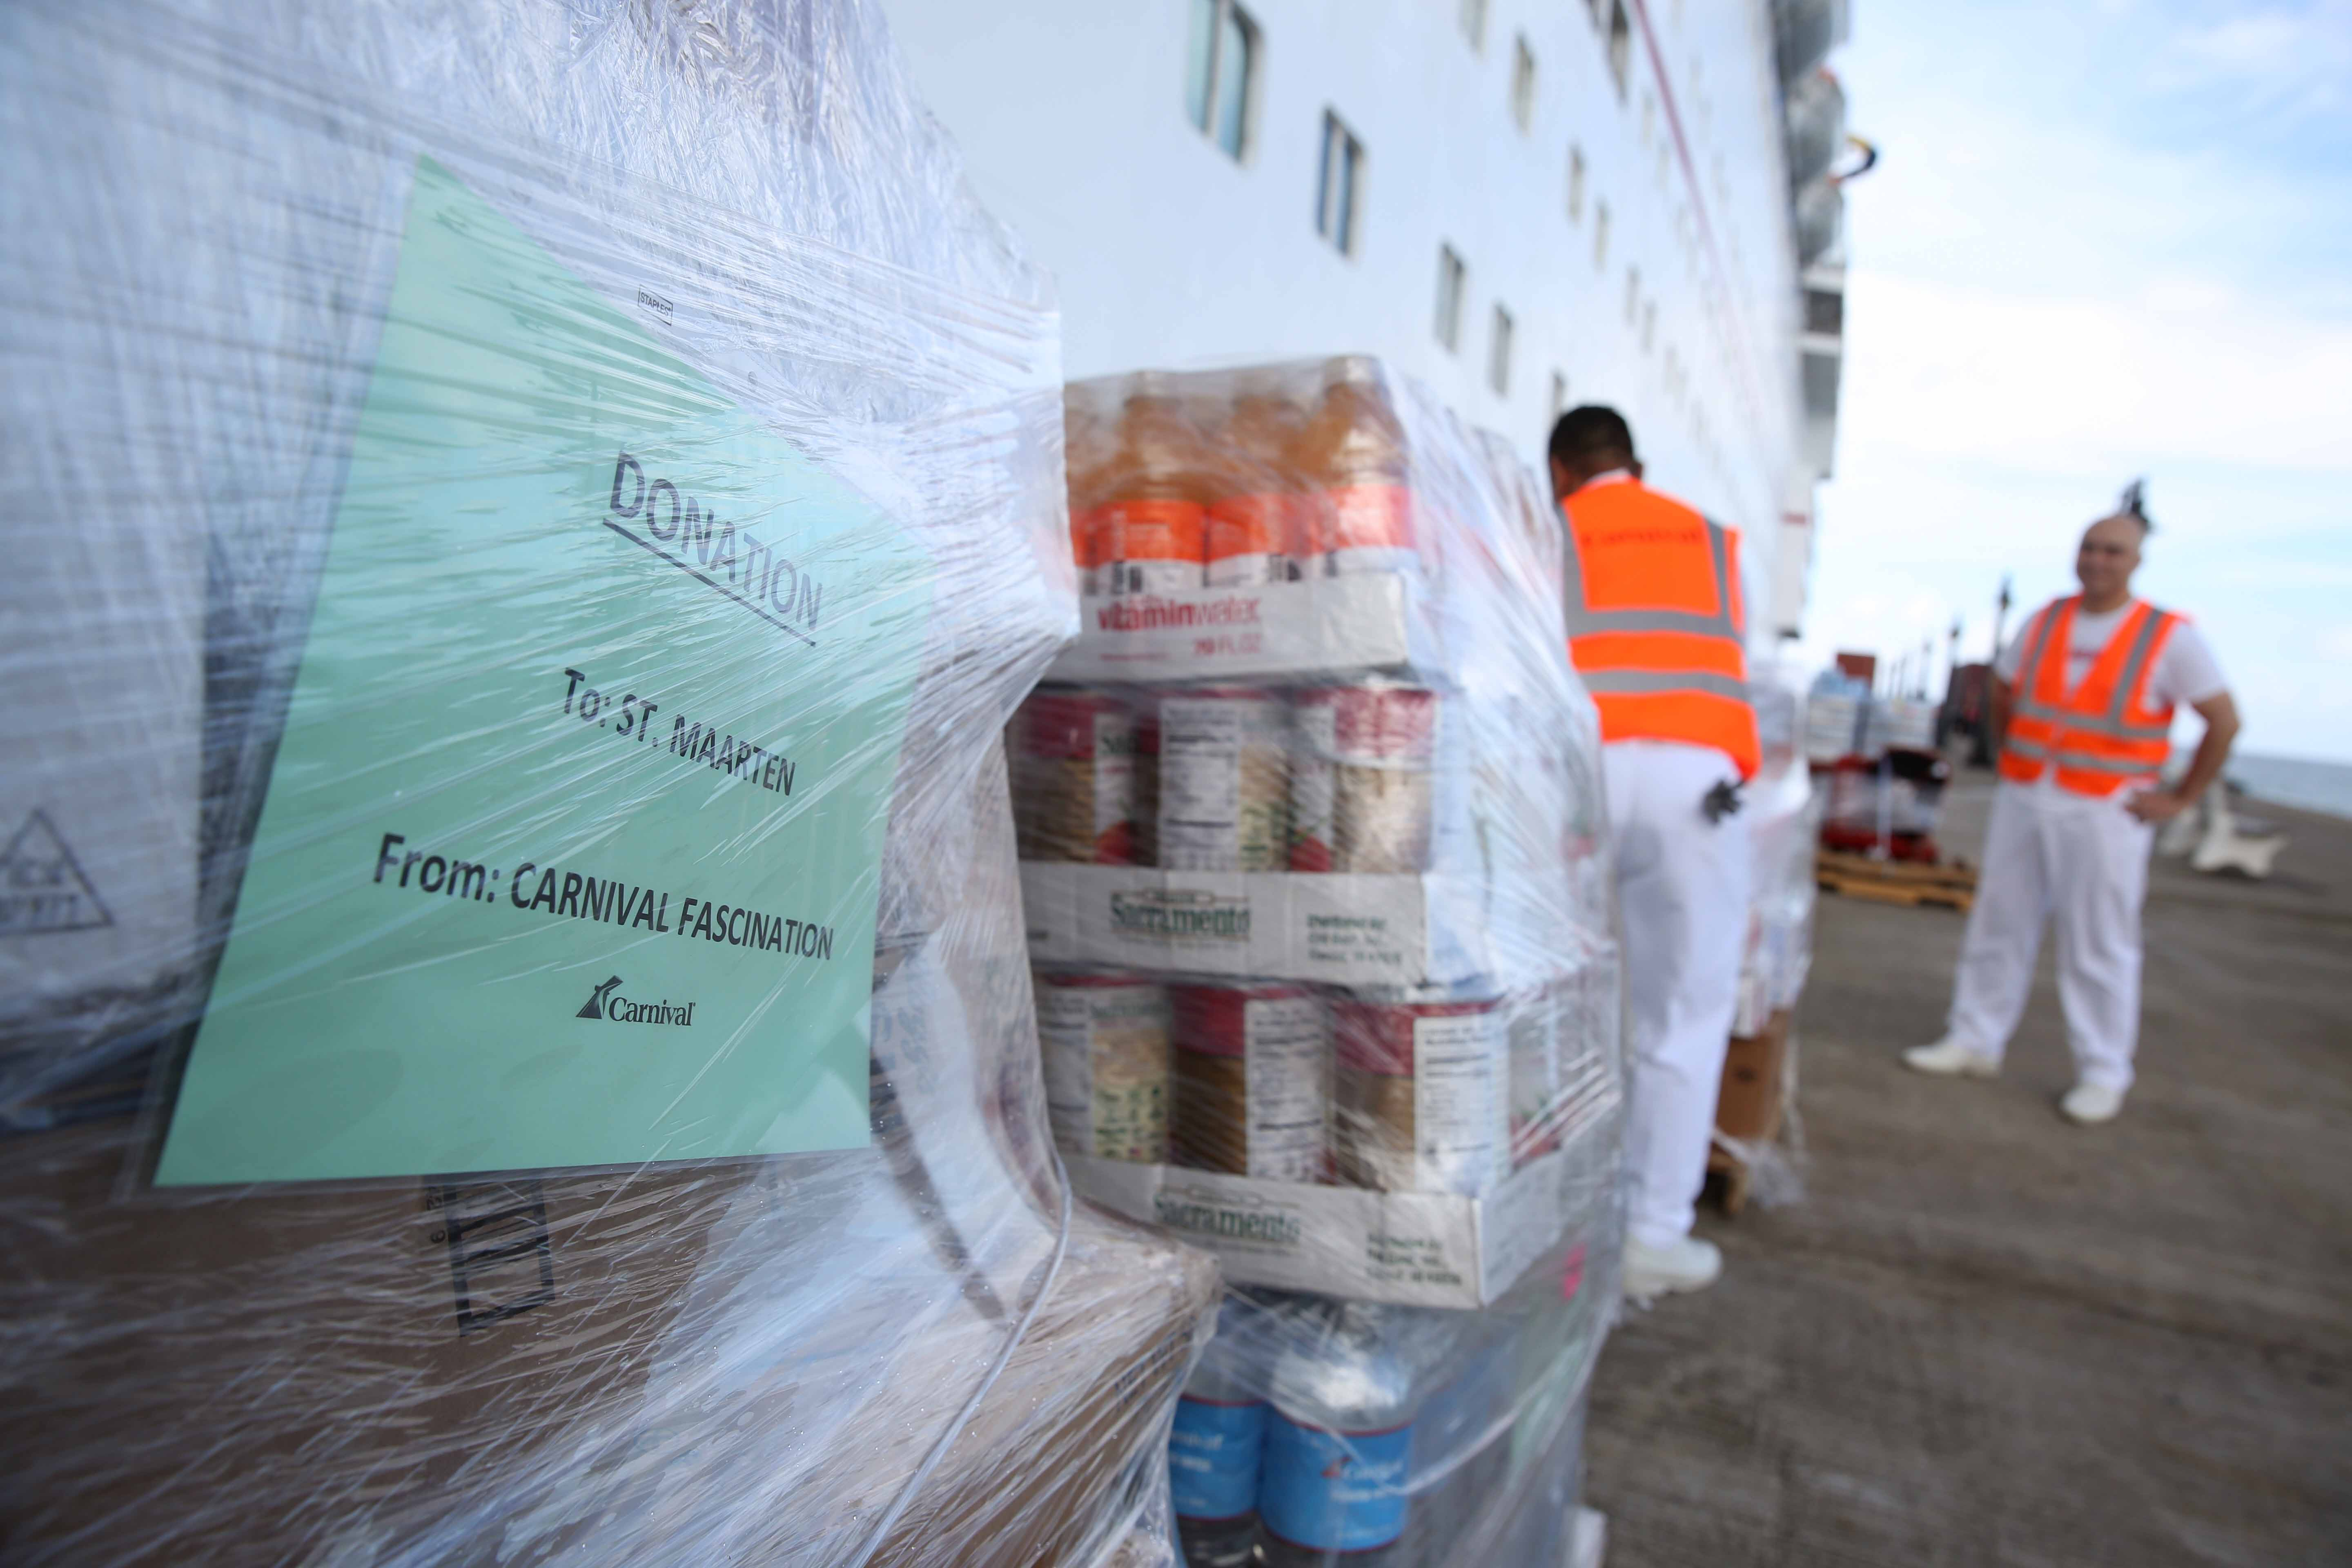 Carnival Fascination Delivers Relief Supplies to St. Maarten Residents Impacted by Hurricane Irma